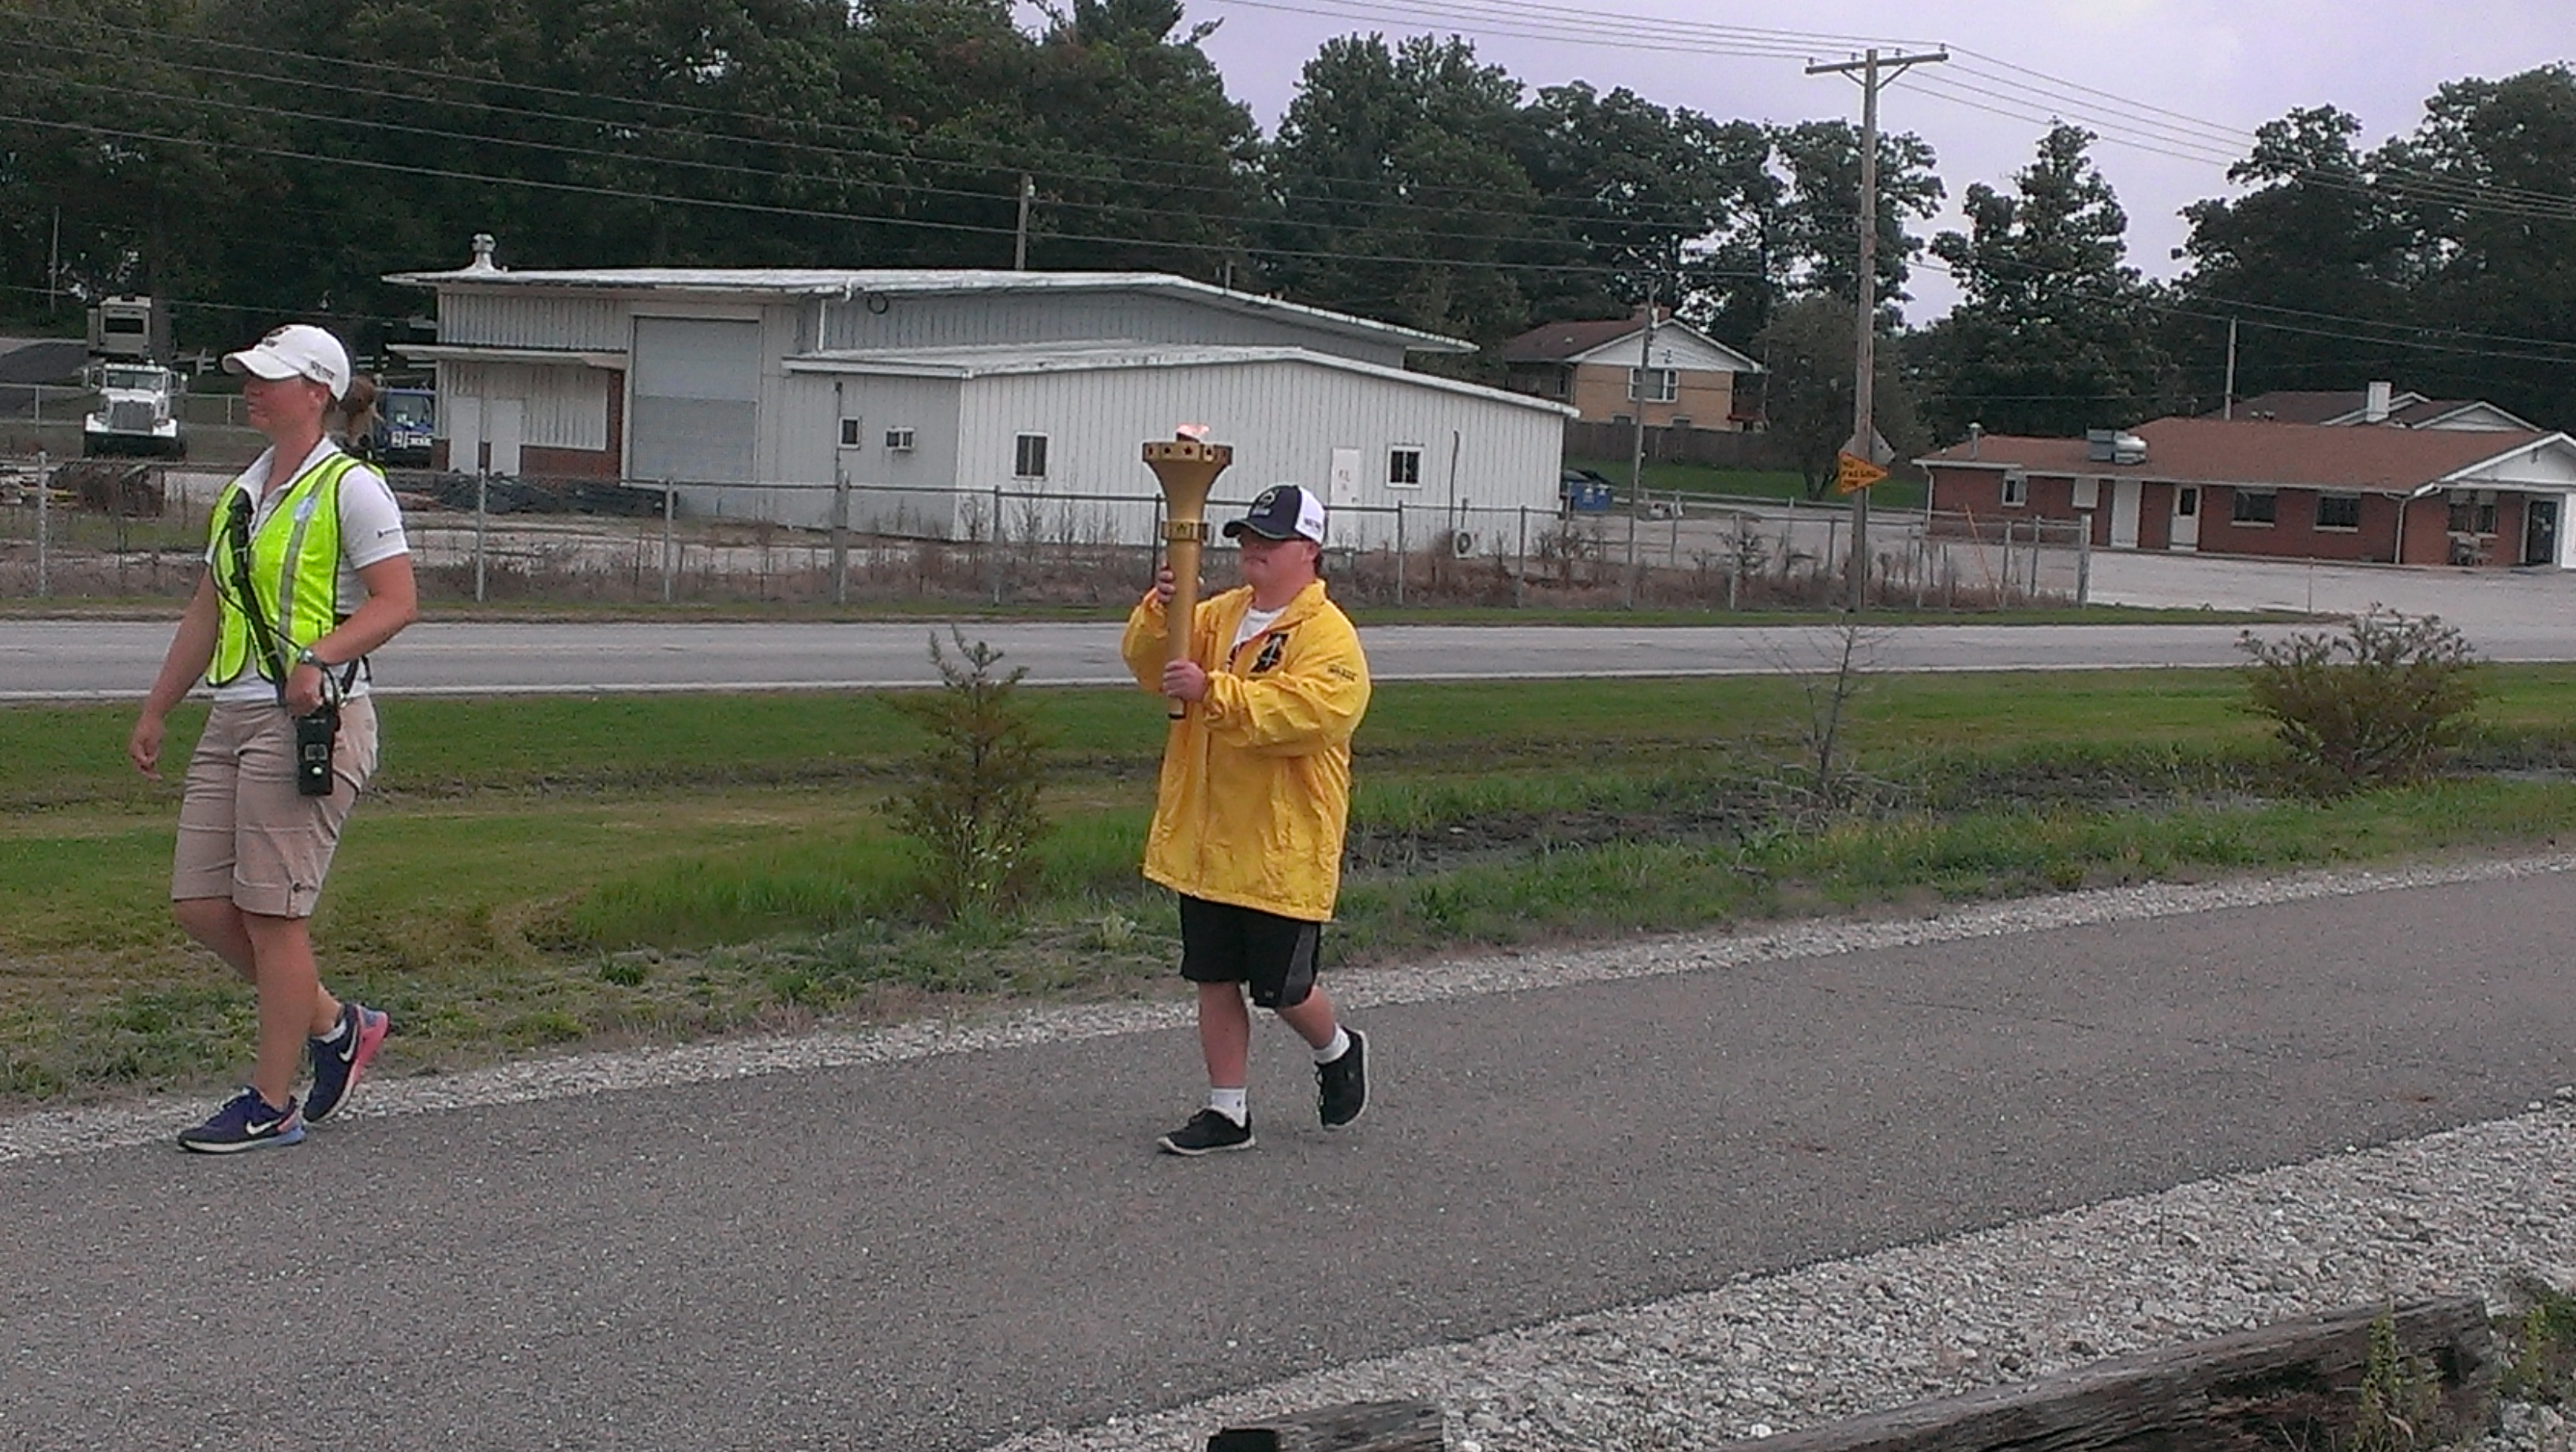 Making his way through Winamac with the torch.